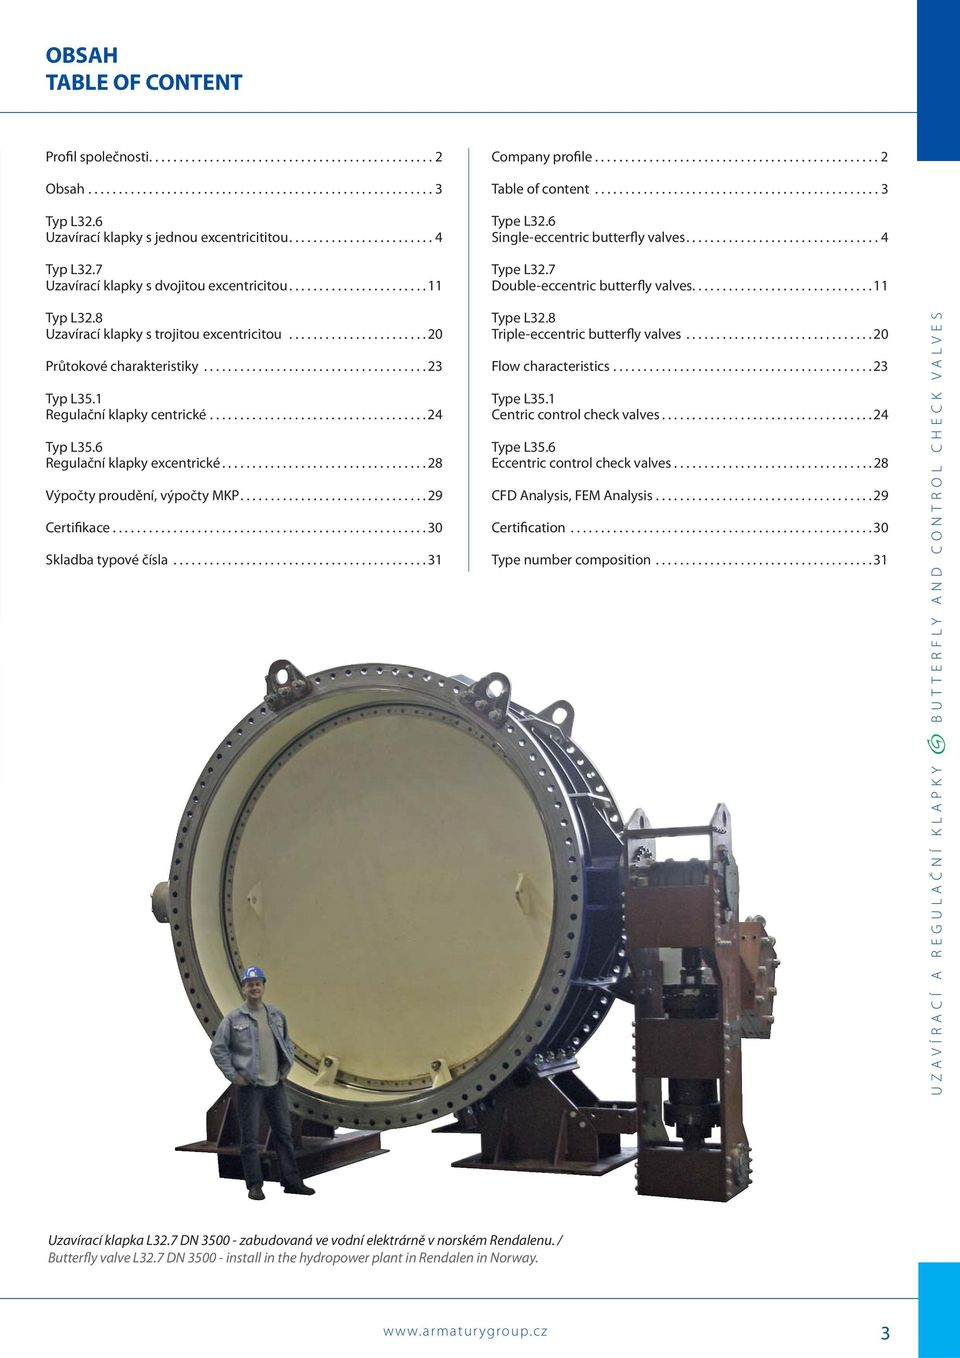 .............................................. 3 Type L32.6 Single-eccentric butterfly valves................................ 4 Type L32.7 Double-eccentric butterfly valves.............................. 11 Typ L32.